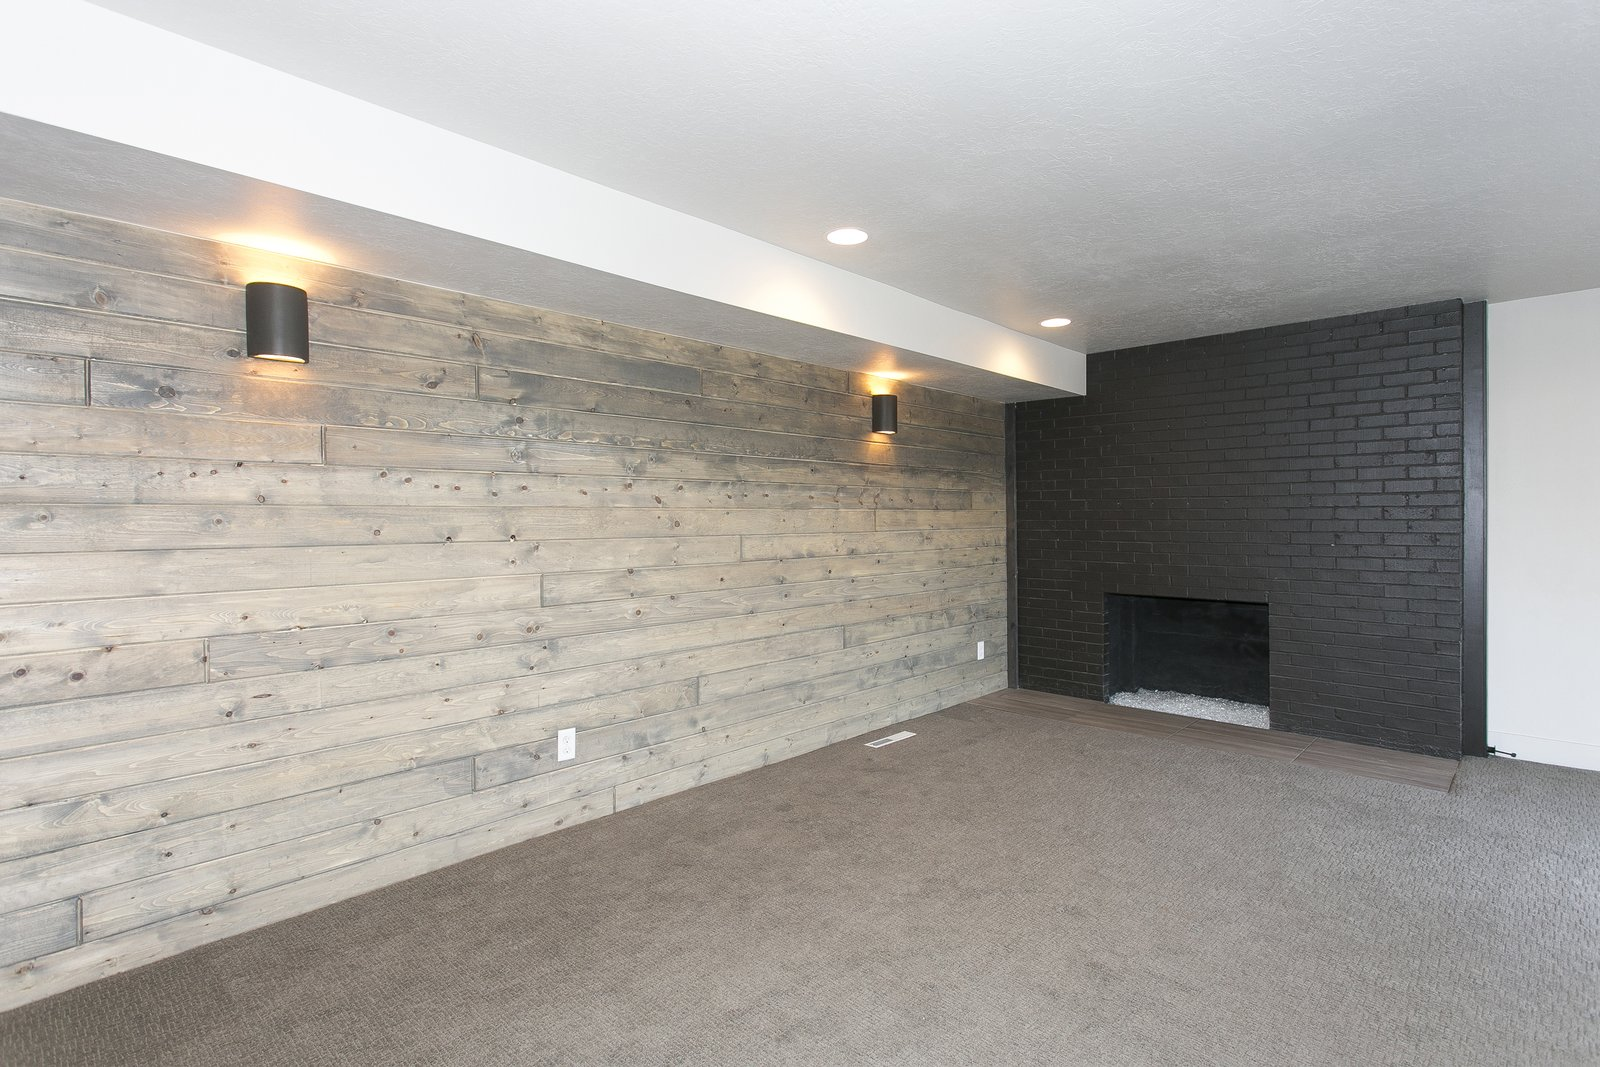 Basement Family room with wood accent wall and painted black brick fireplace.